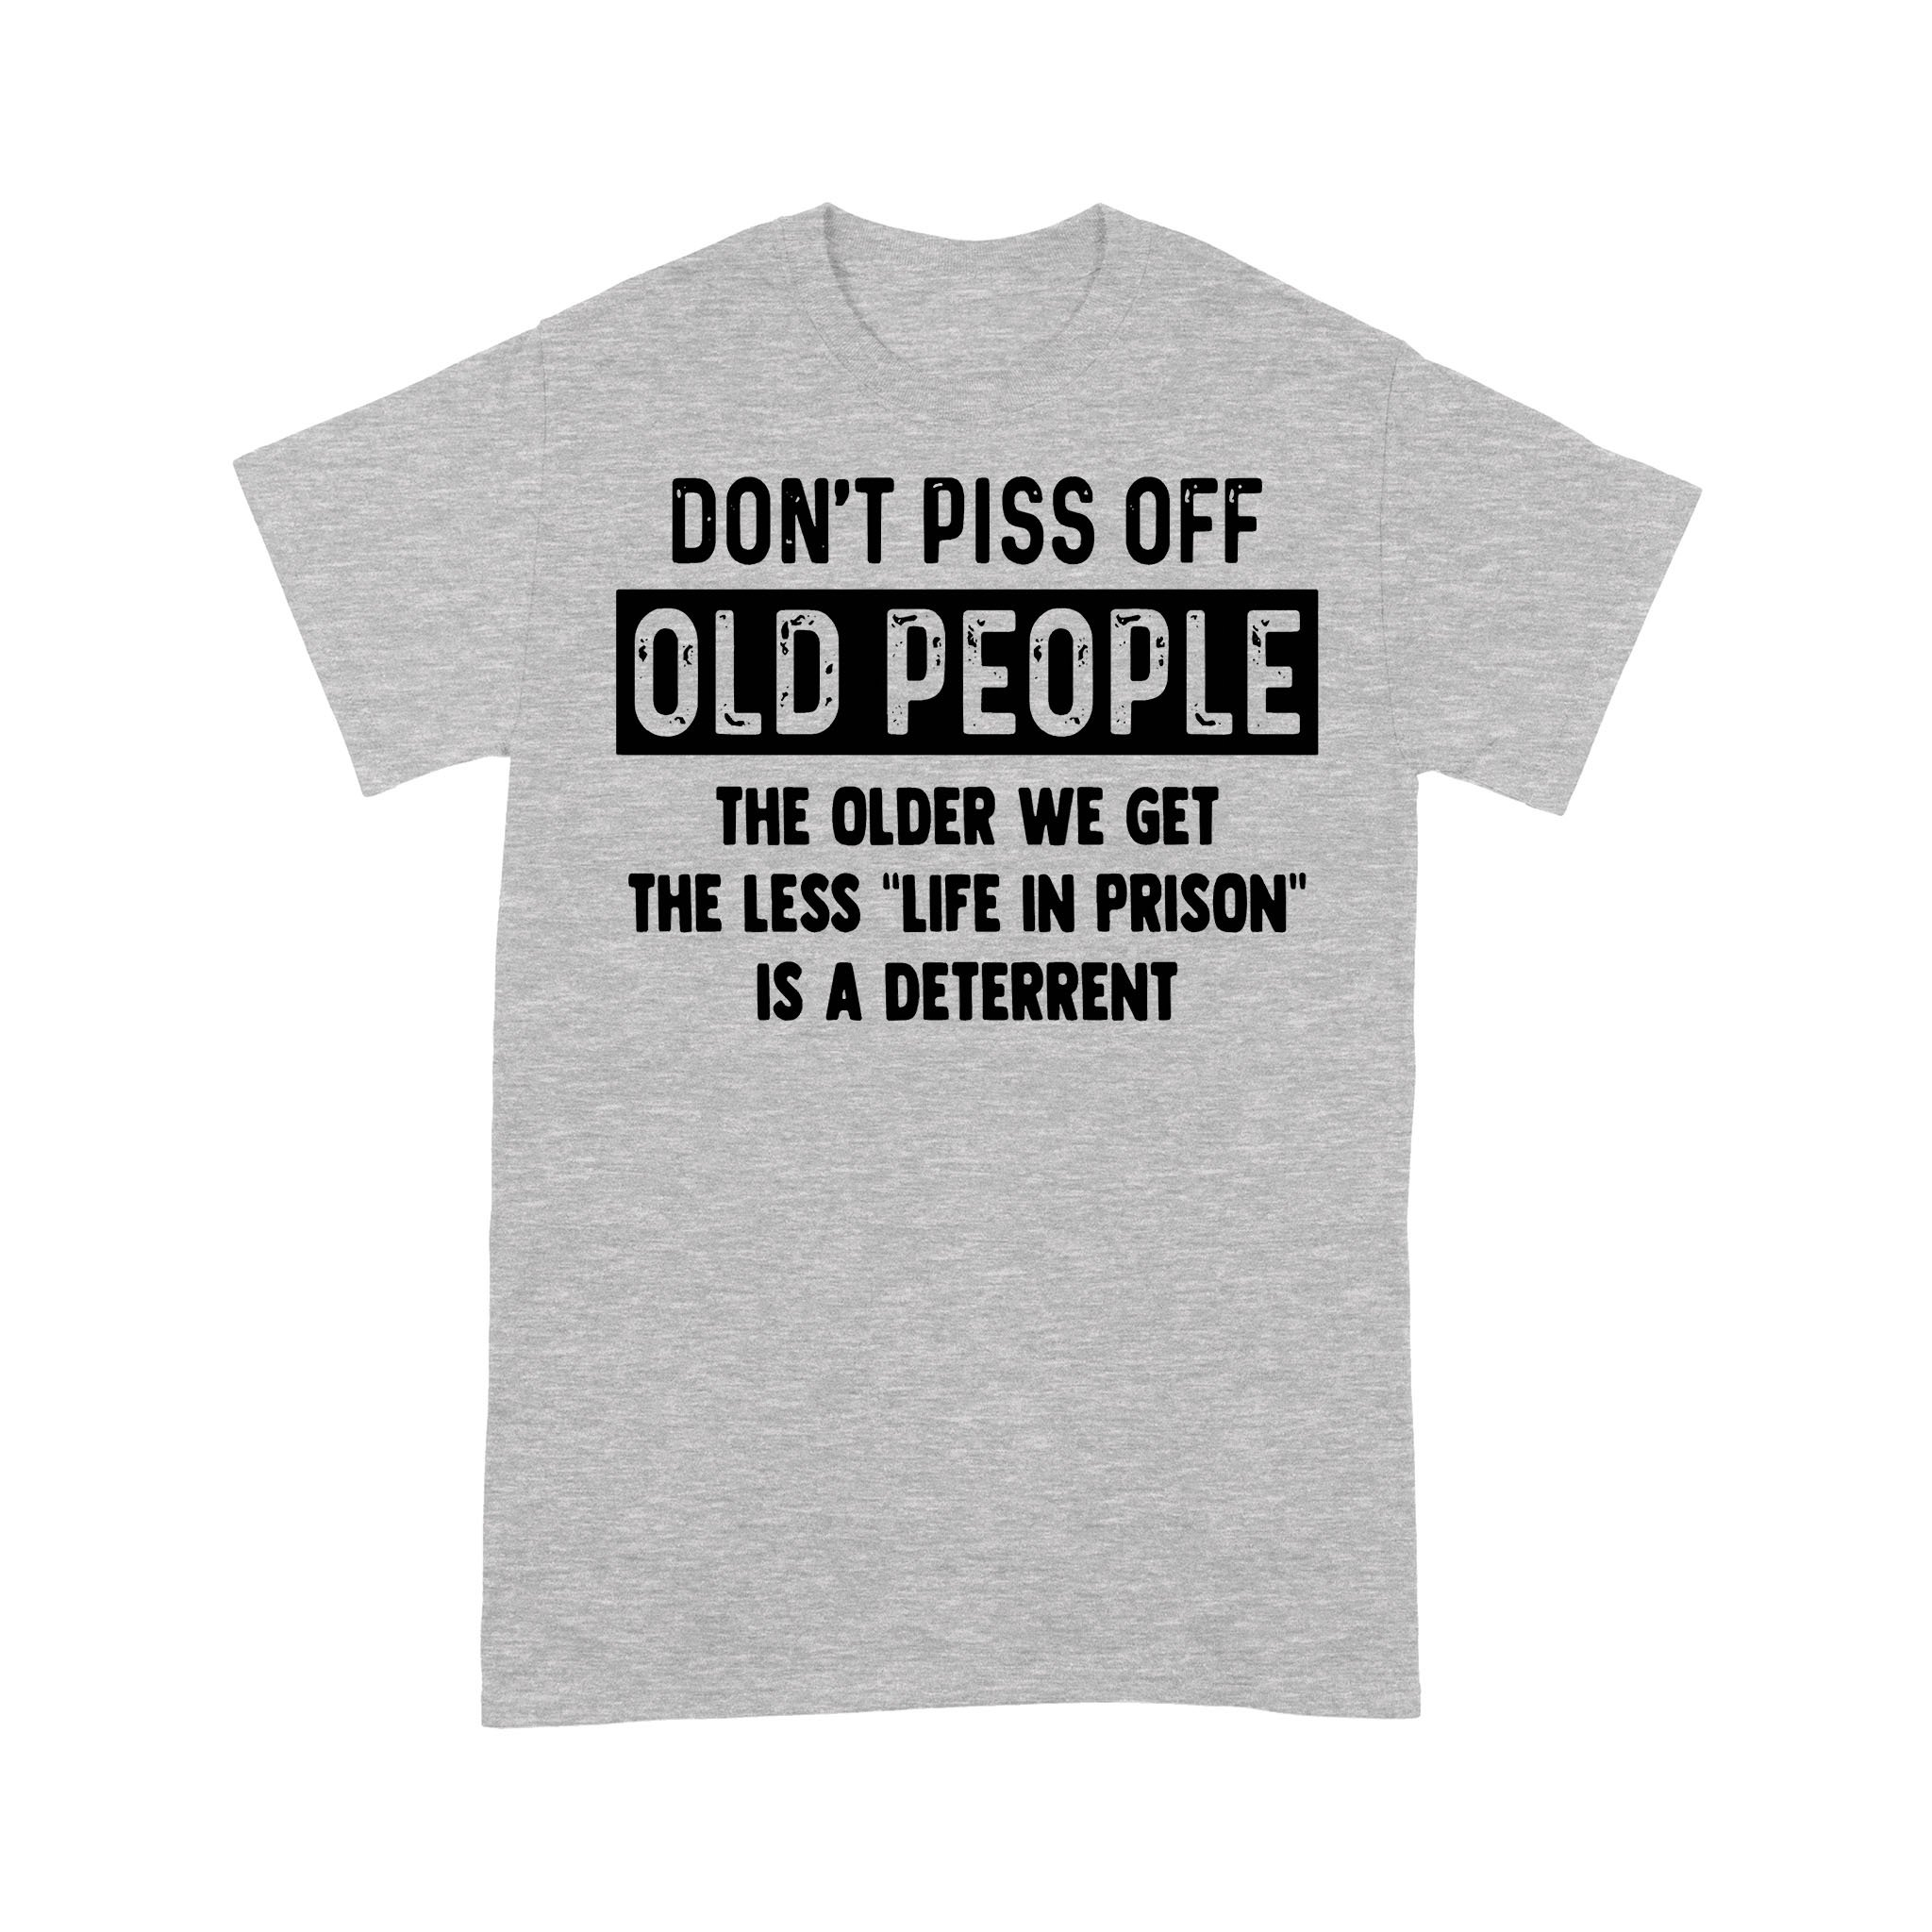 Don't Piss Off Old People The Older We Get The Less Life In Prison Is A Deterrent Funny T-shirt